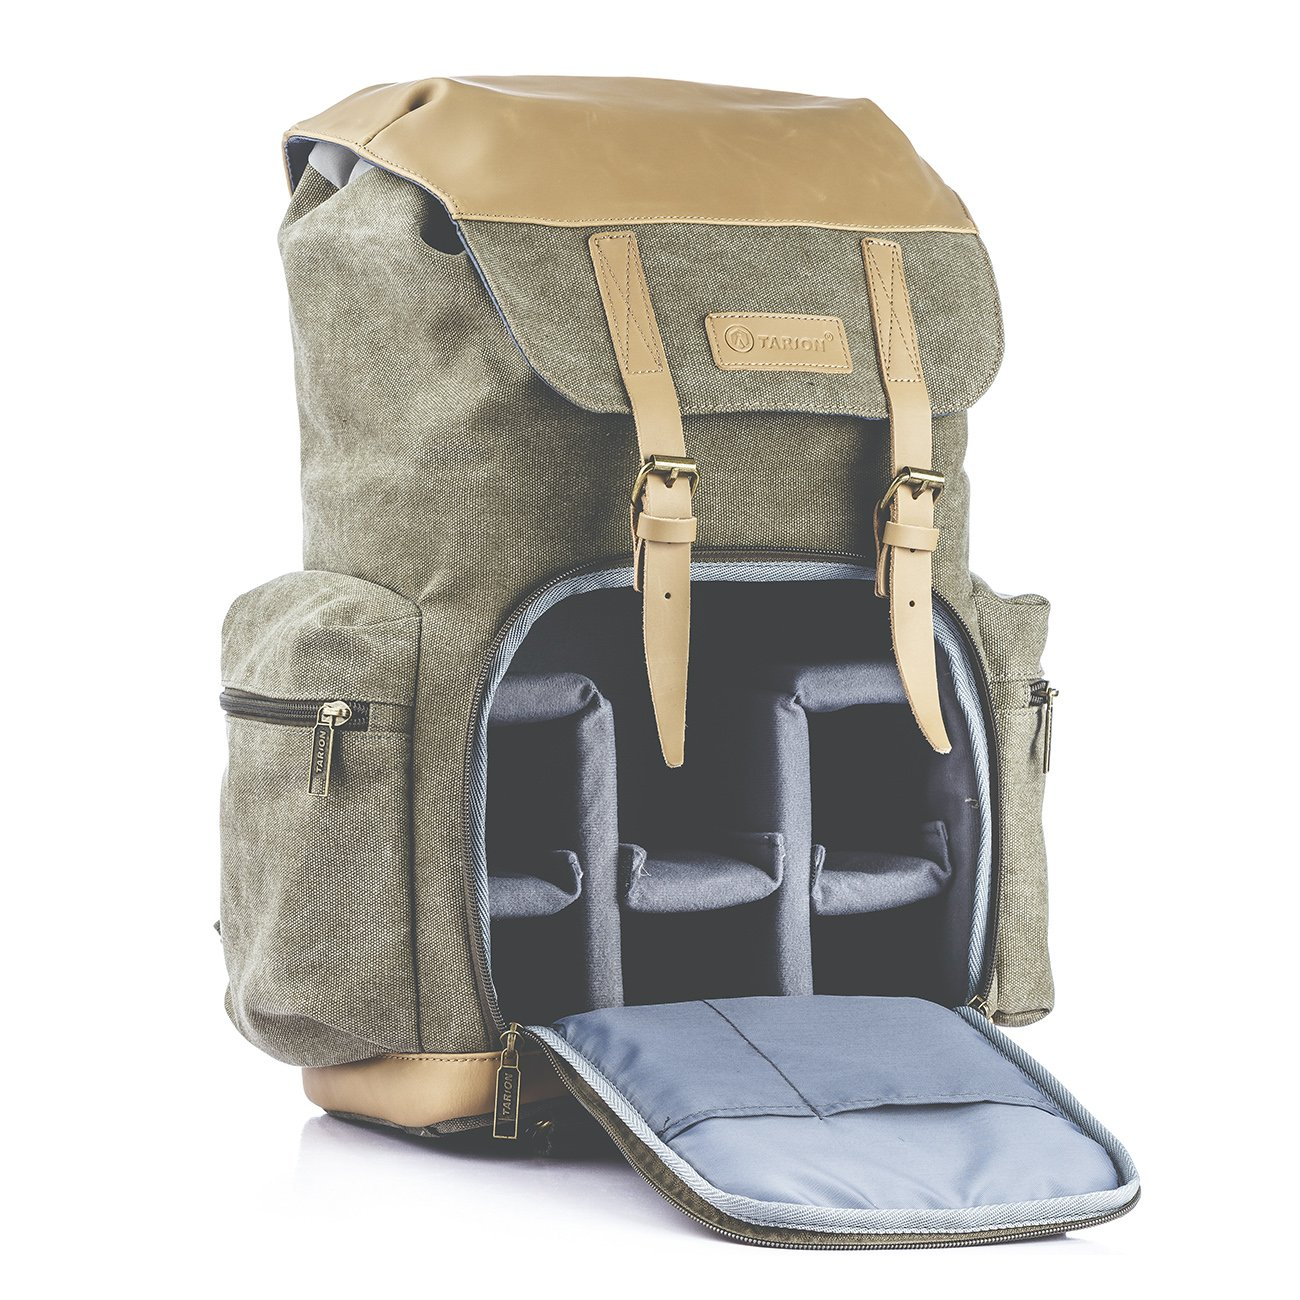 TARION M-02 Canvas Camera Backpack Water-Repellent Camera Bag for DSLR SLR Mirrorless Cameras & Accessories - Colour Green by TARION (Image #3)